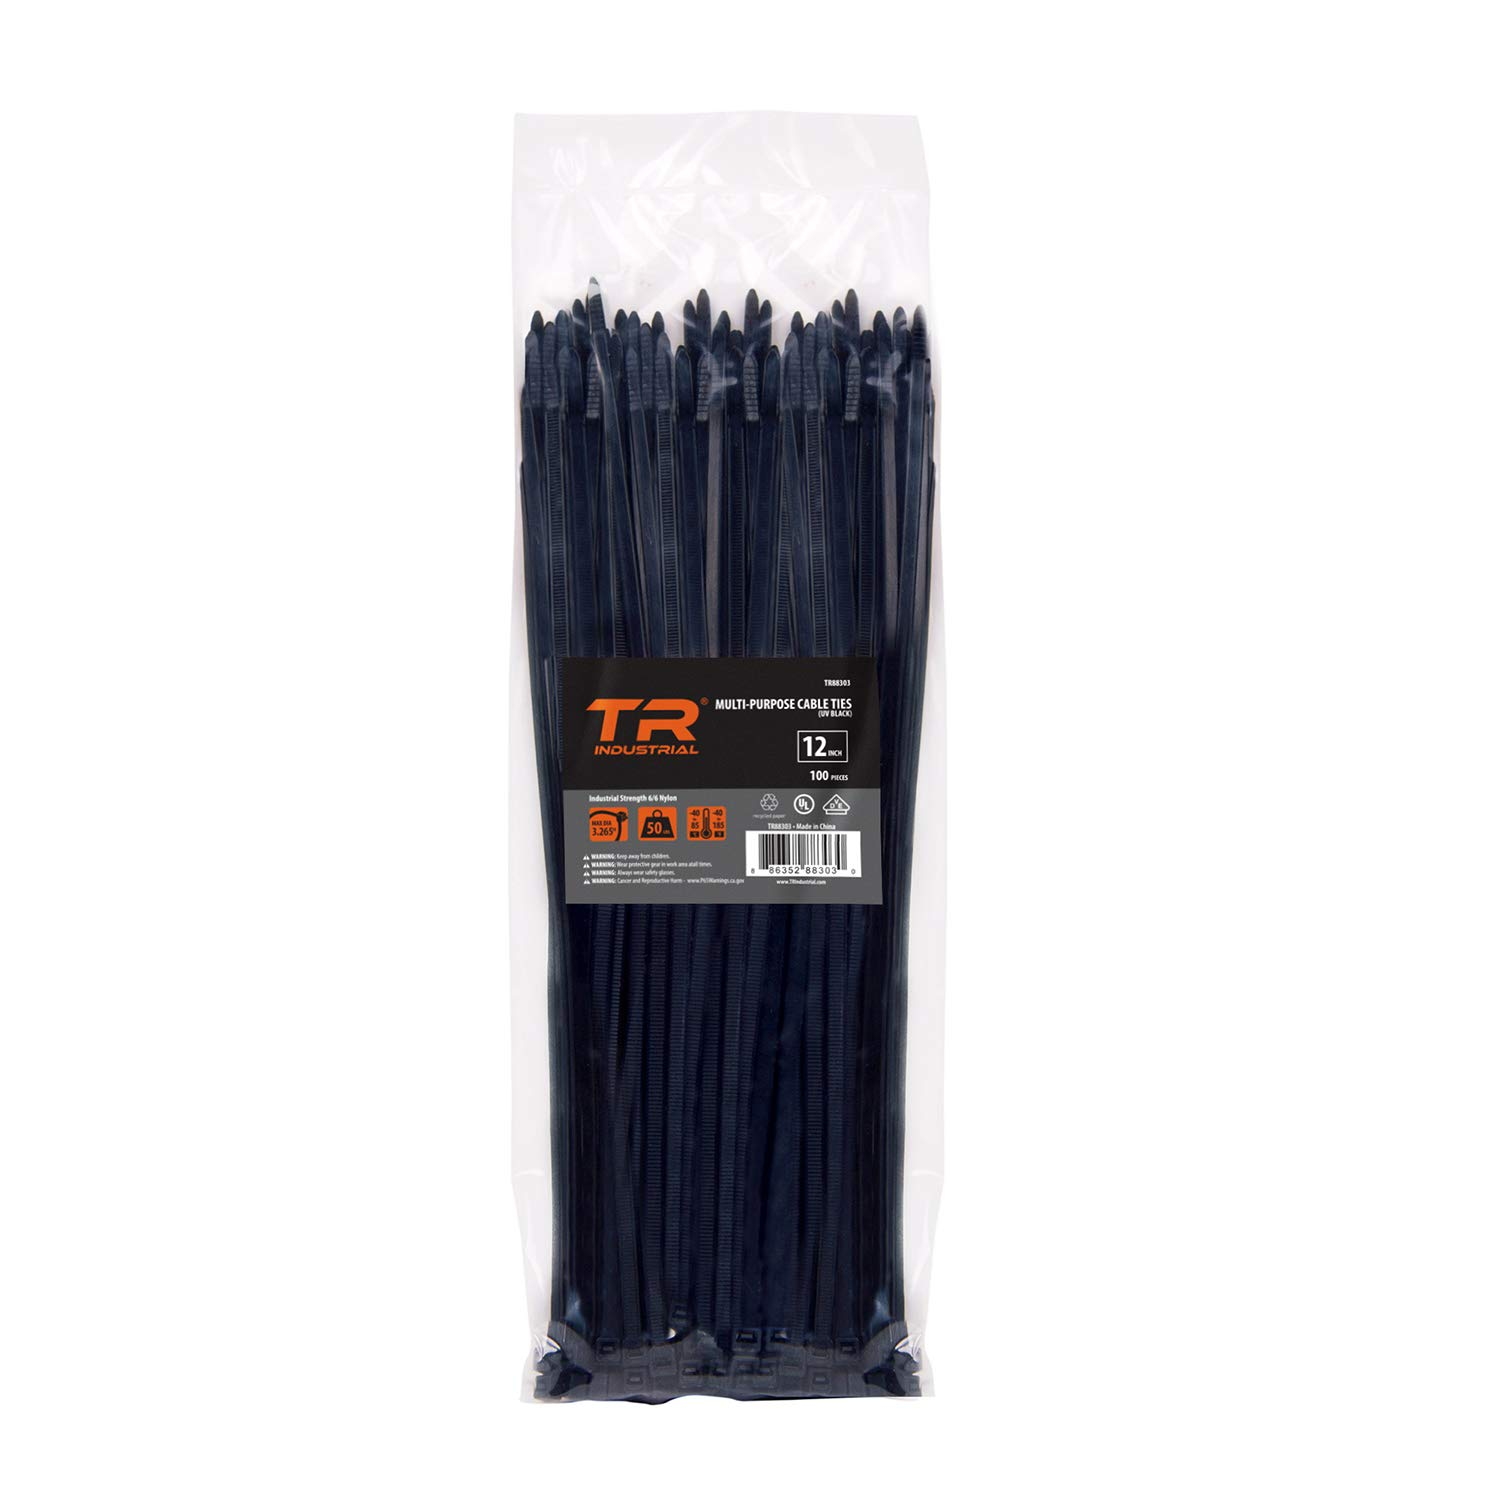 TR Industrial TR88304 Multi-Purpose Cable Ties (100 Piece), 14', Black 14 Capri Tools